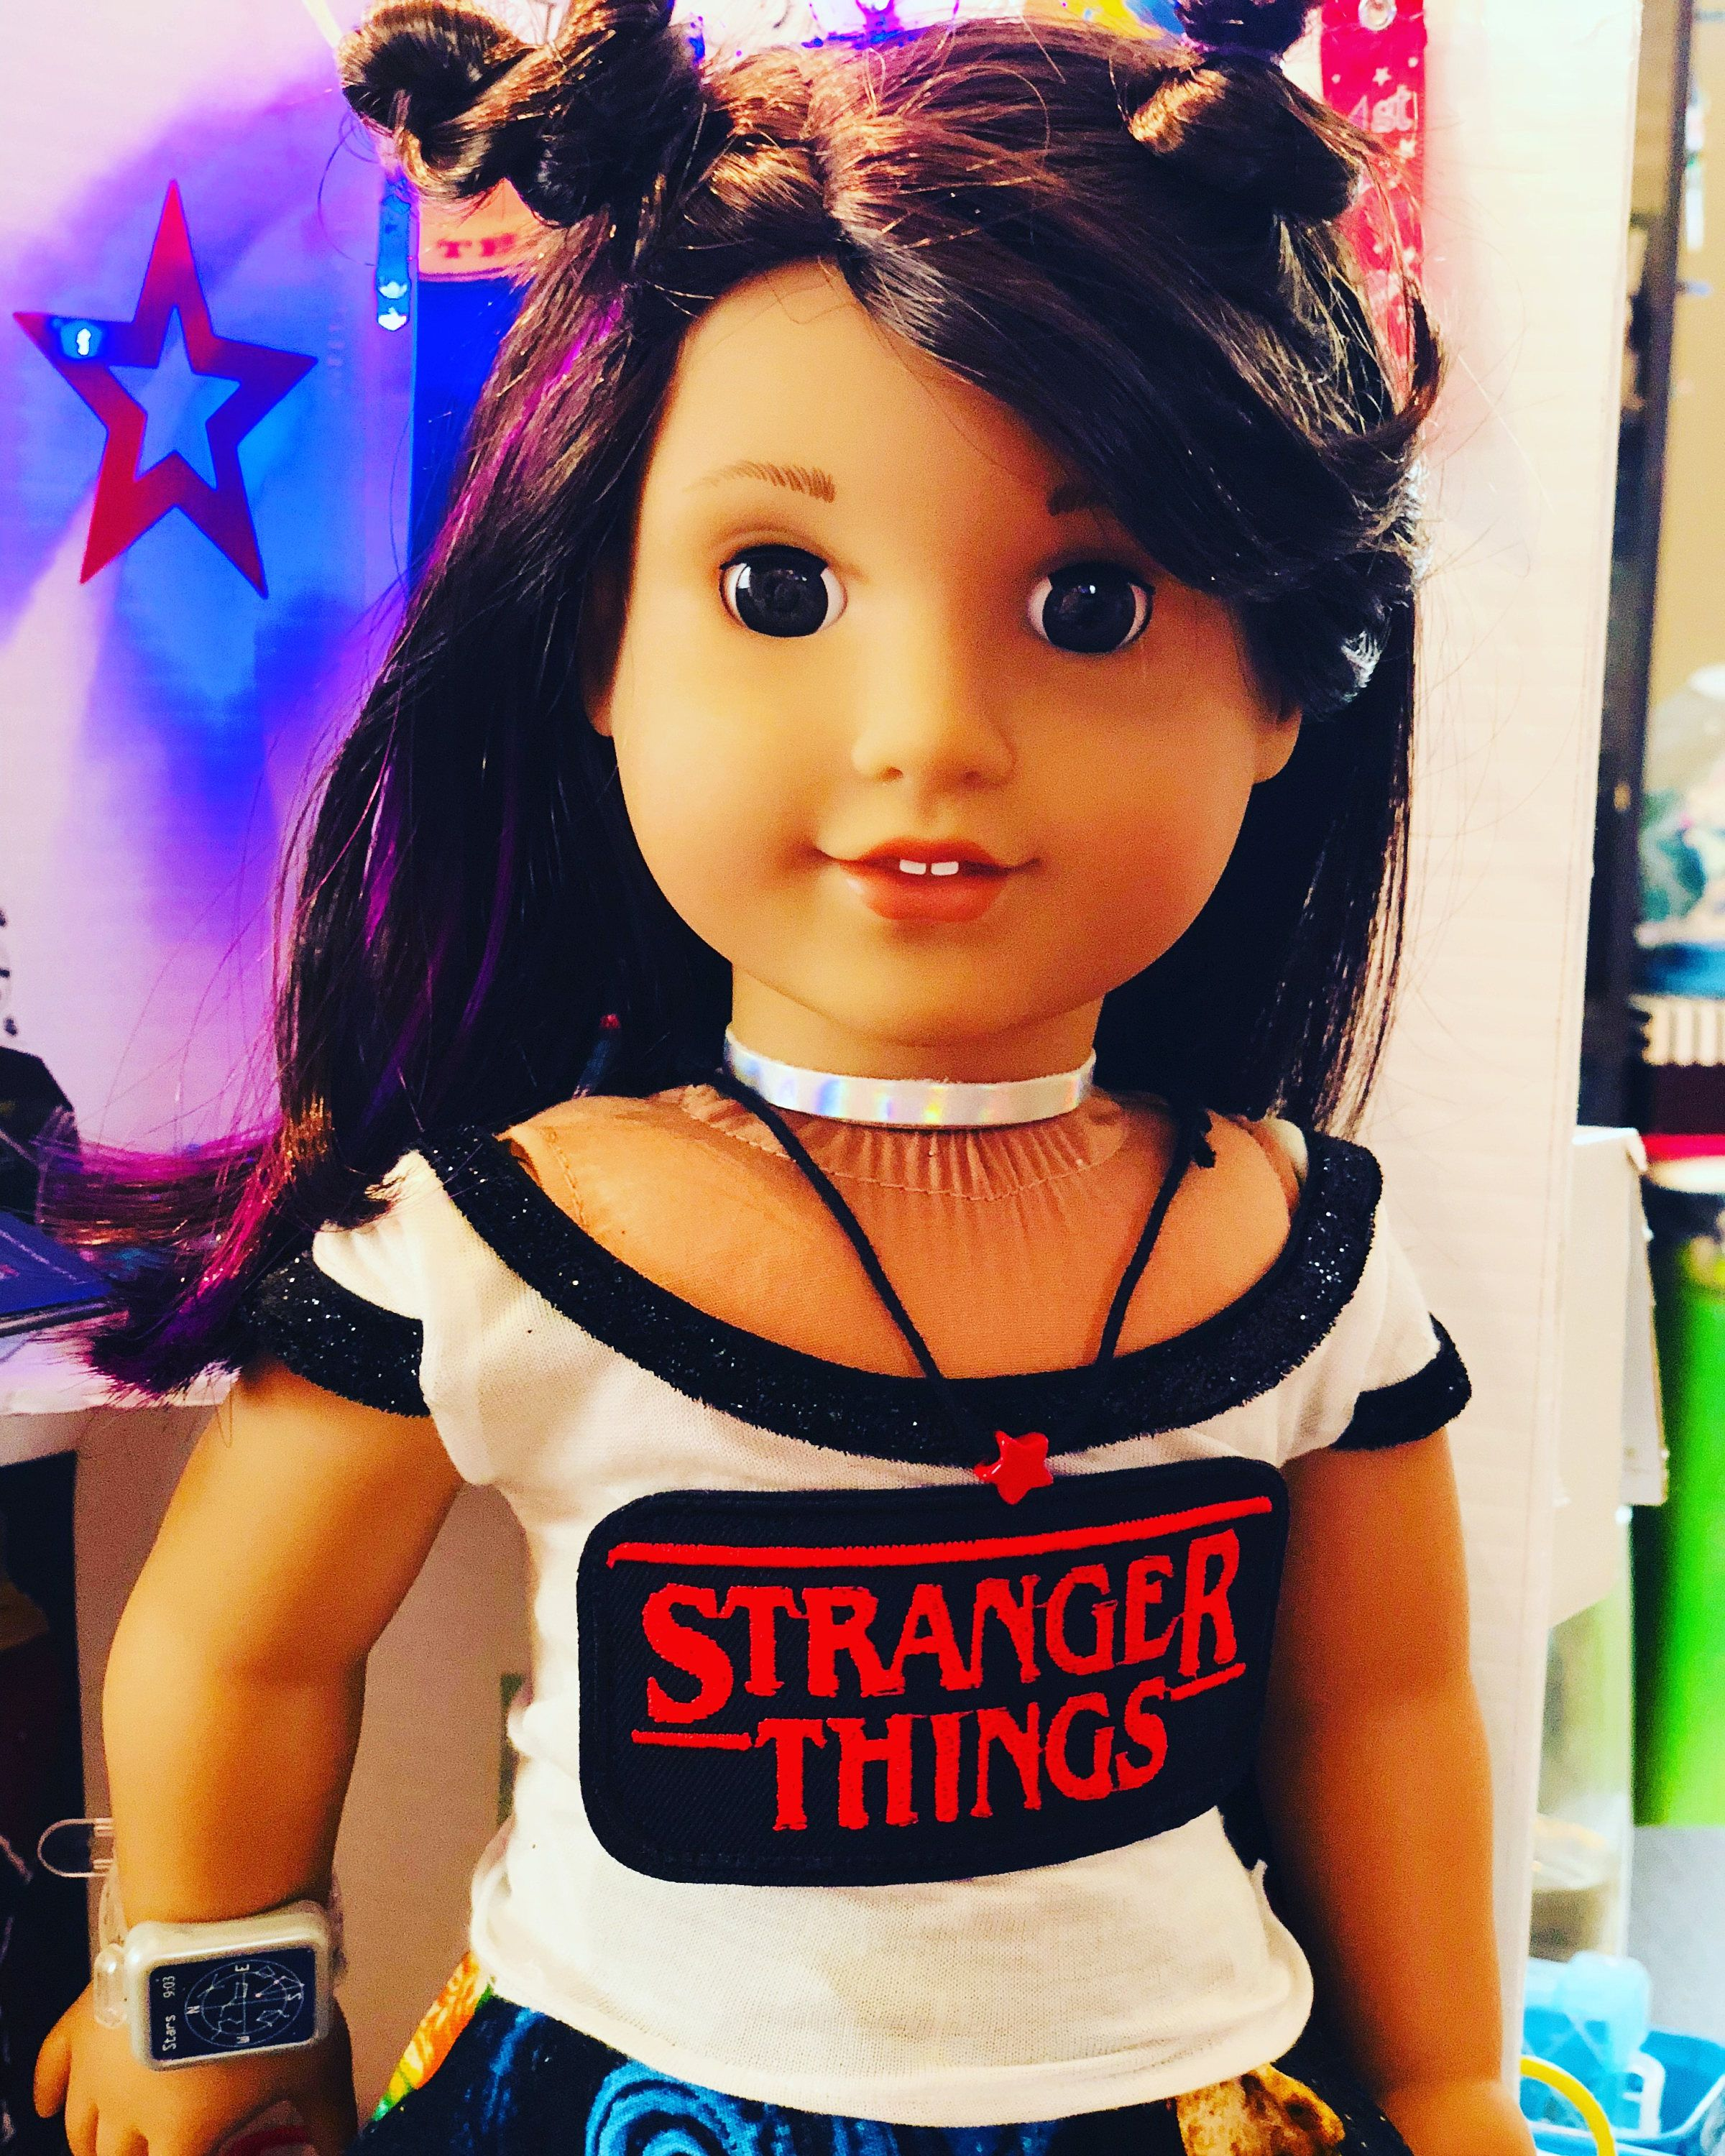 Doll Clothes I8 Inch American Girl Dolls Our Generation Orange T-shirt